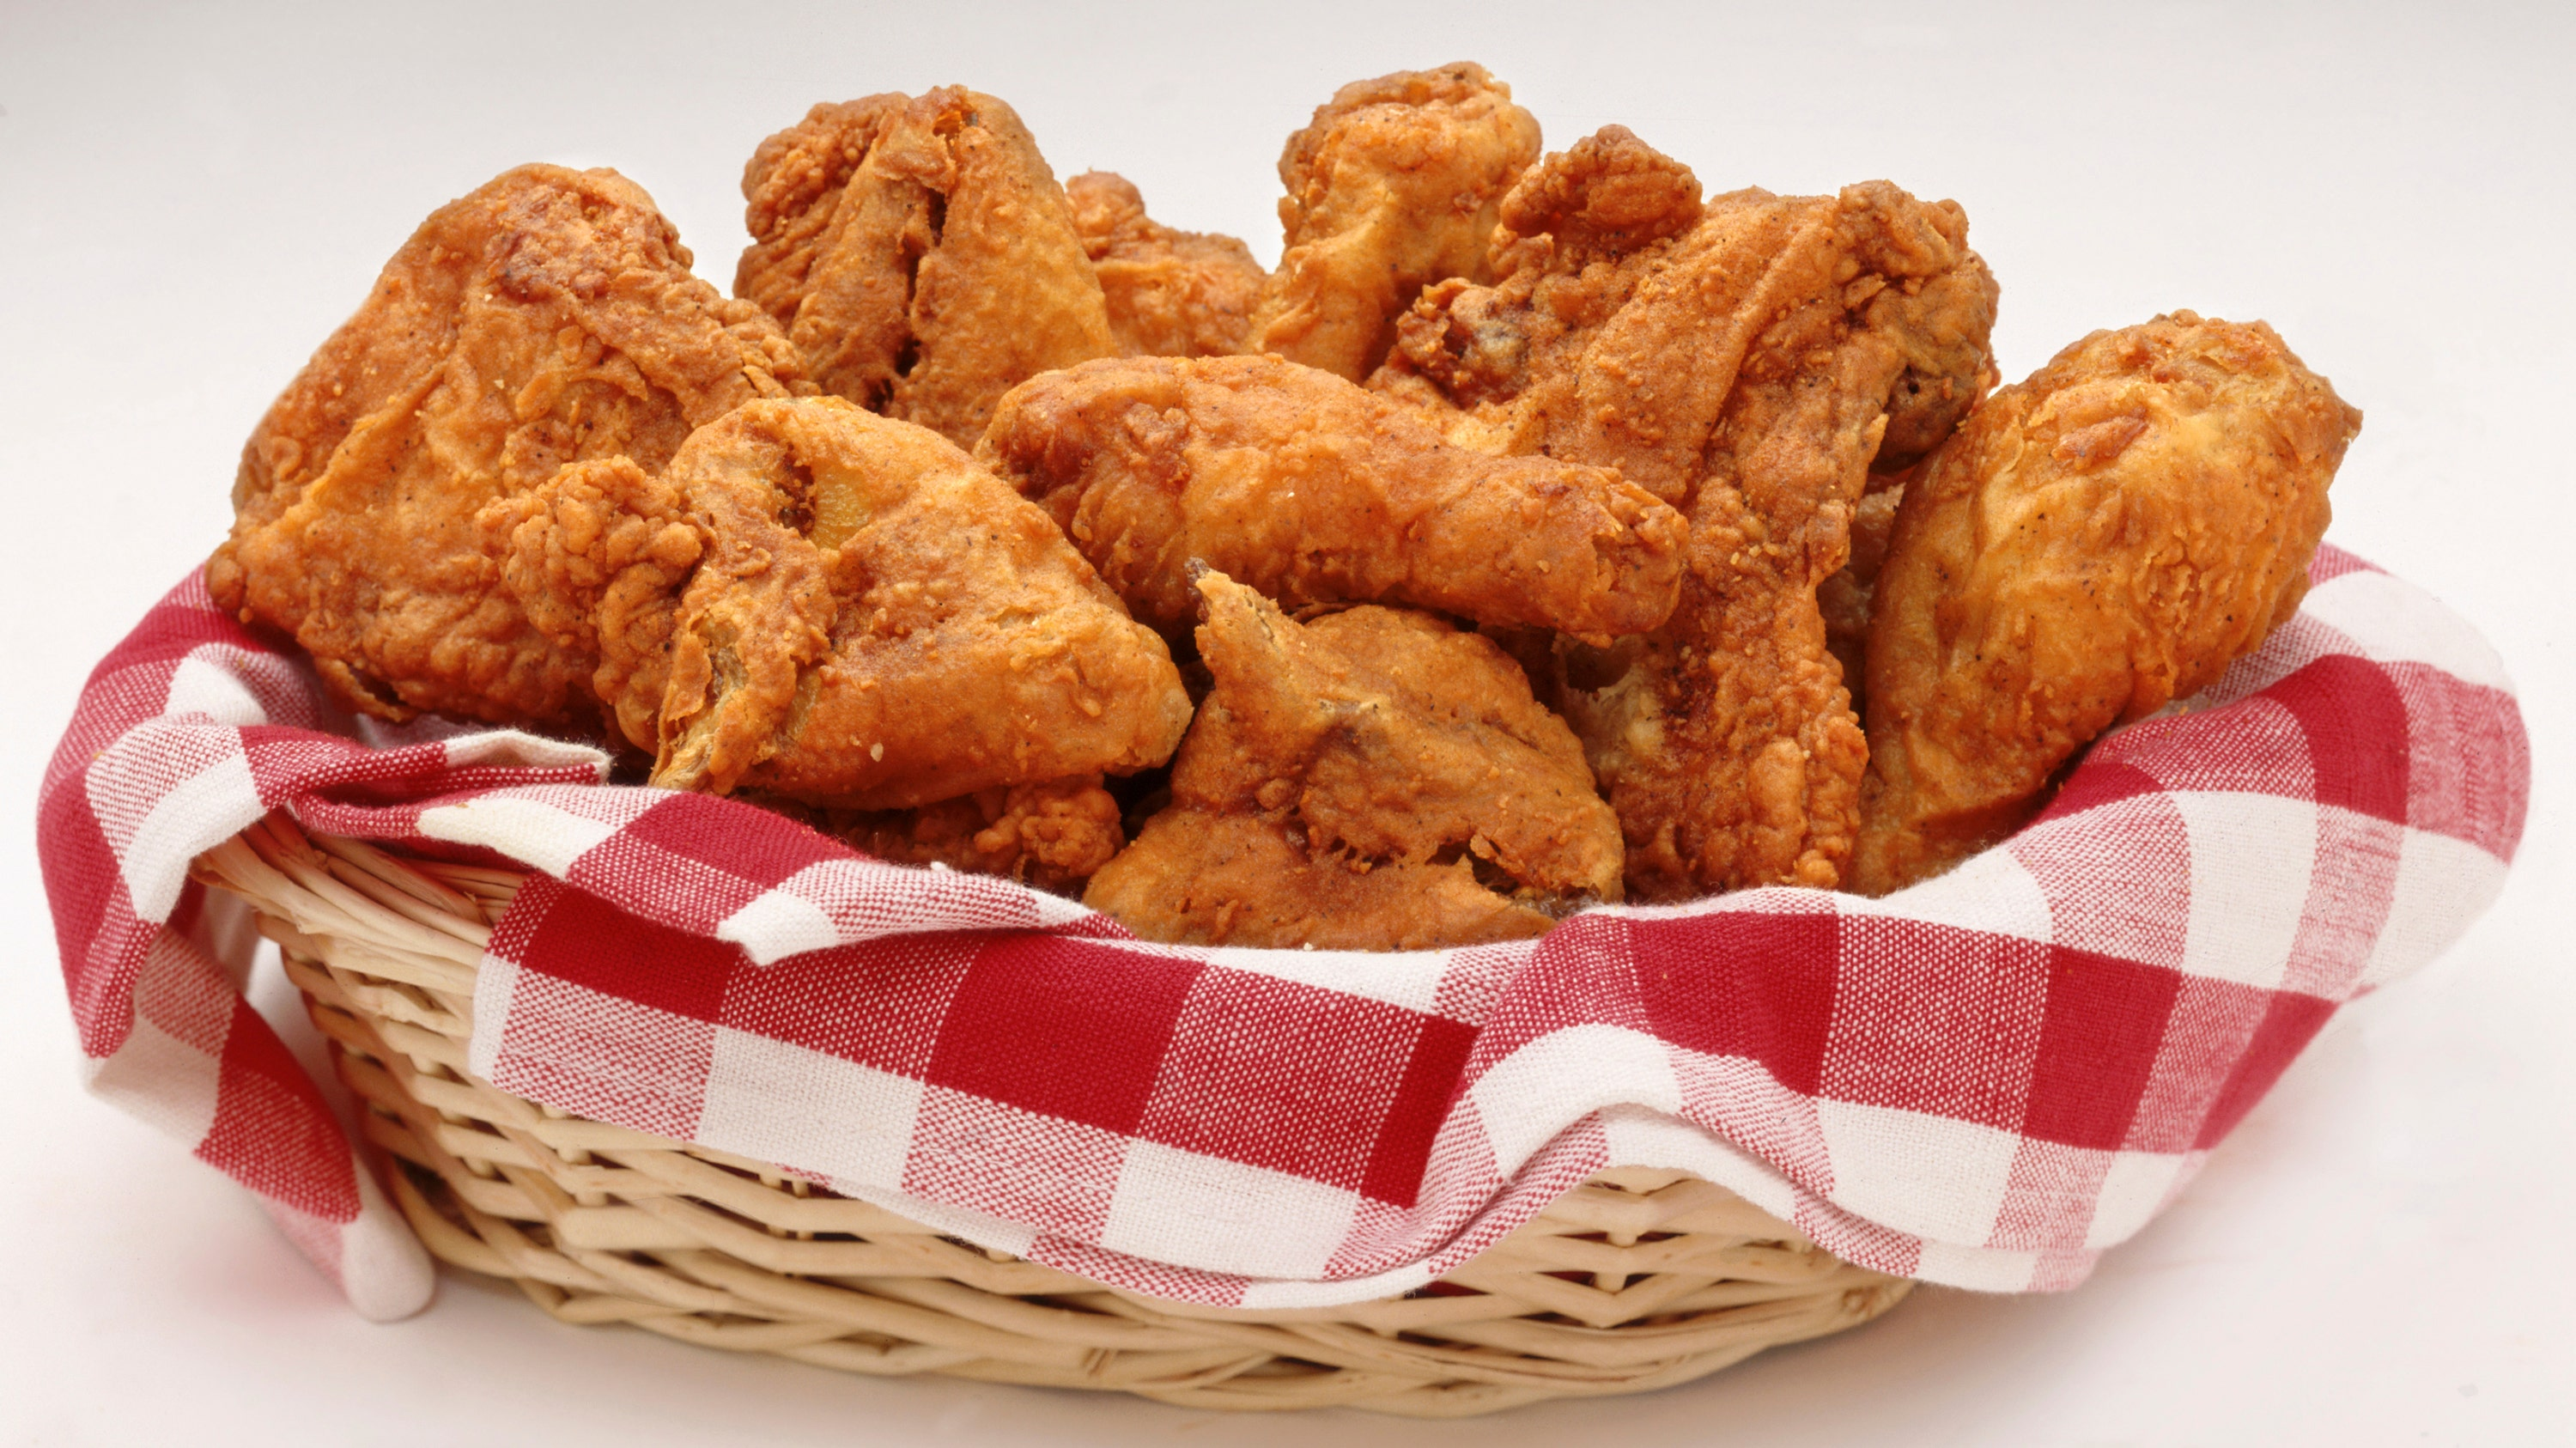 The best fried chicken in America | Fox News